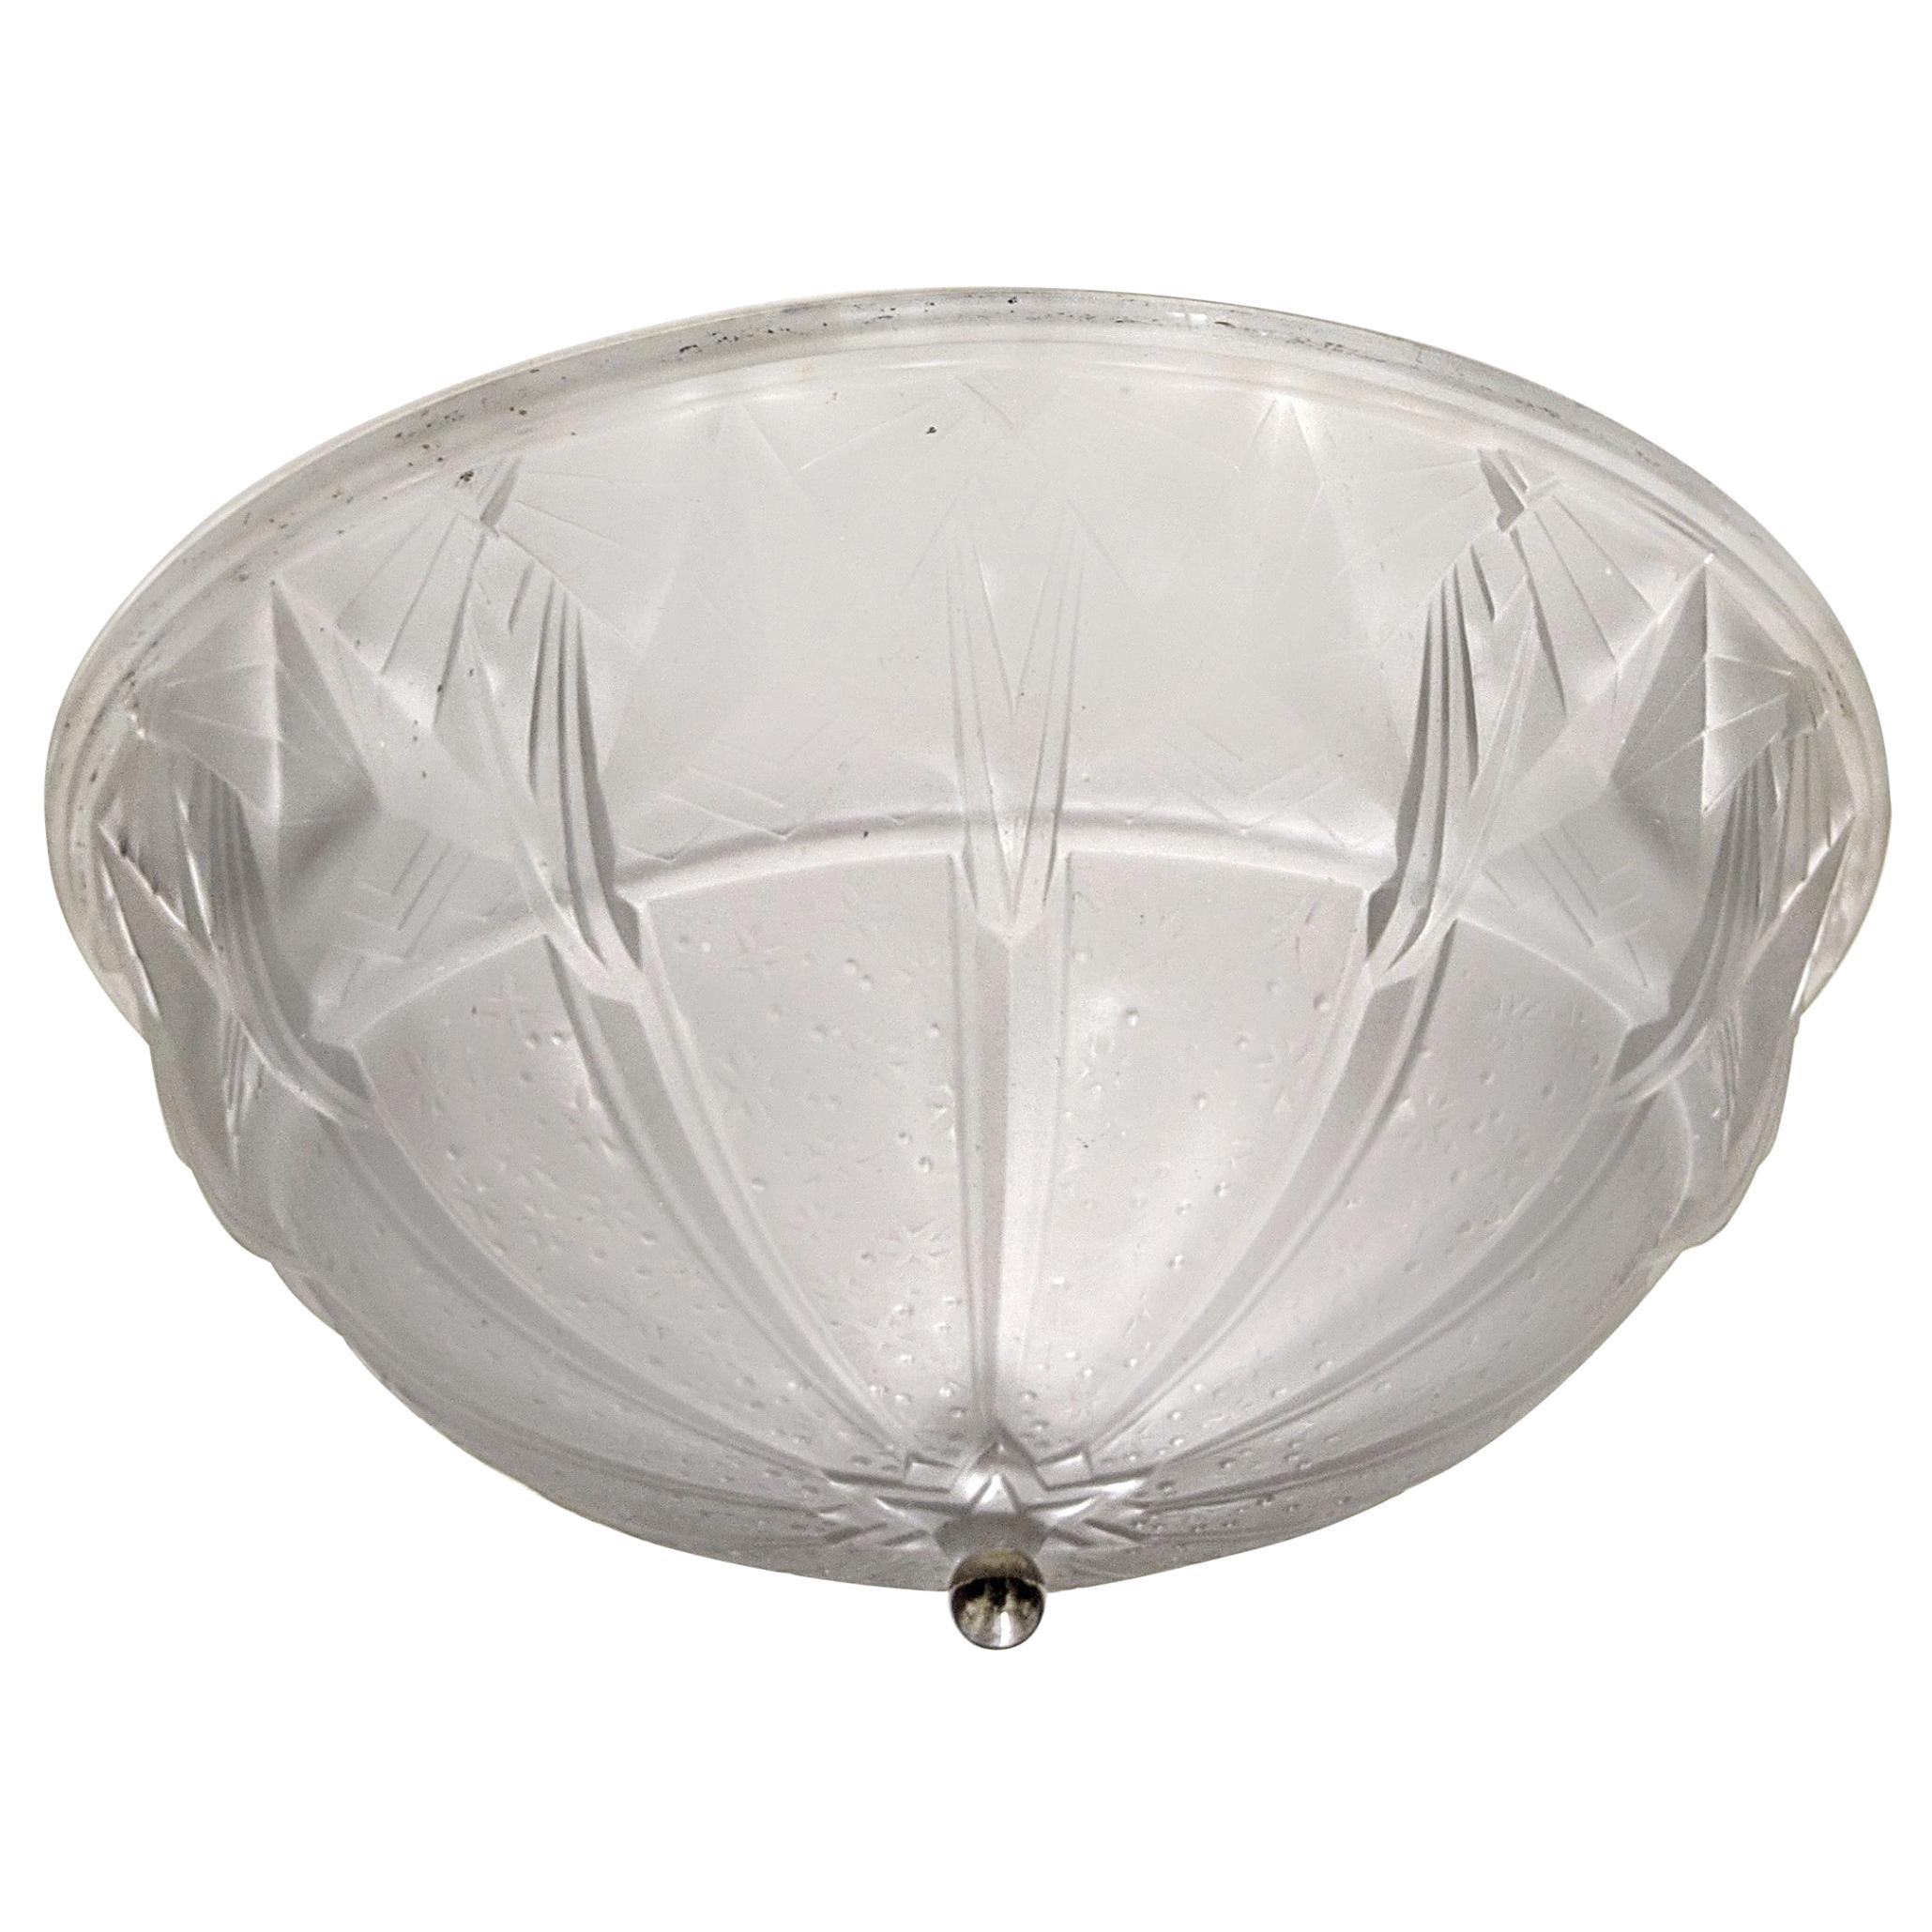 French Art Deco Flush Mount by Muller Freres